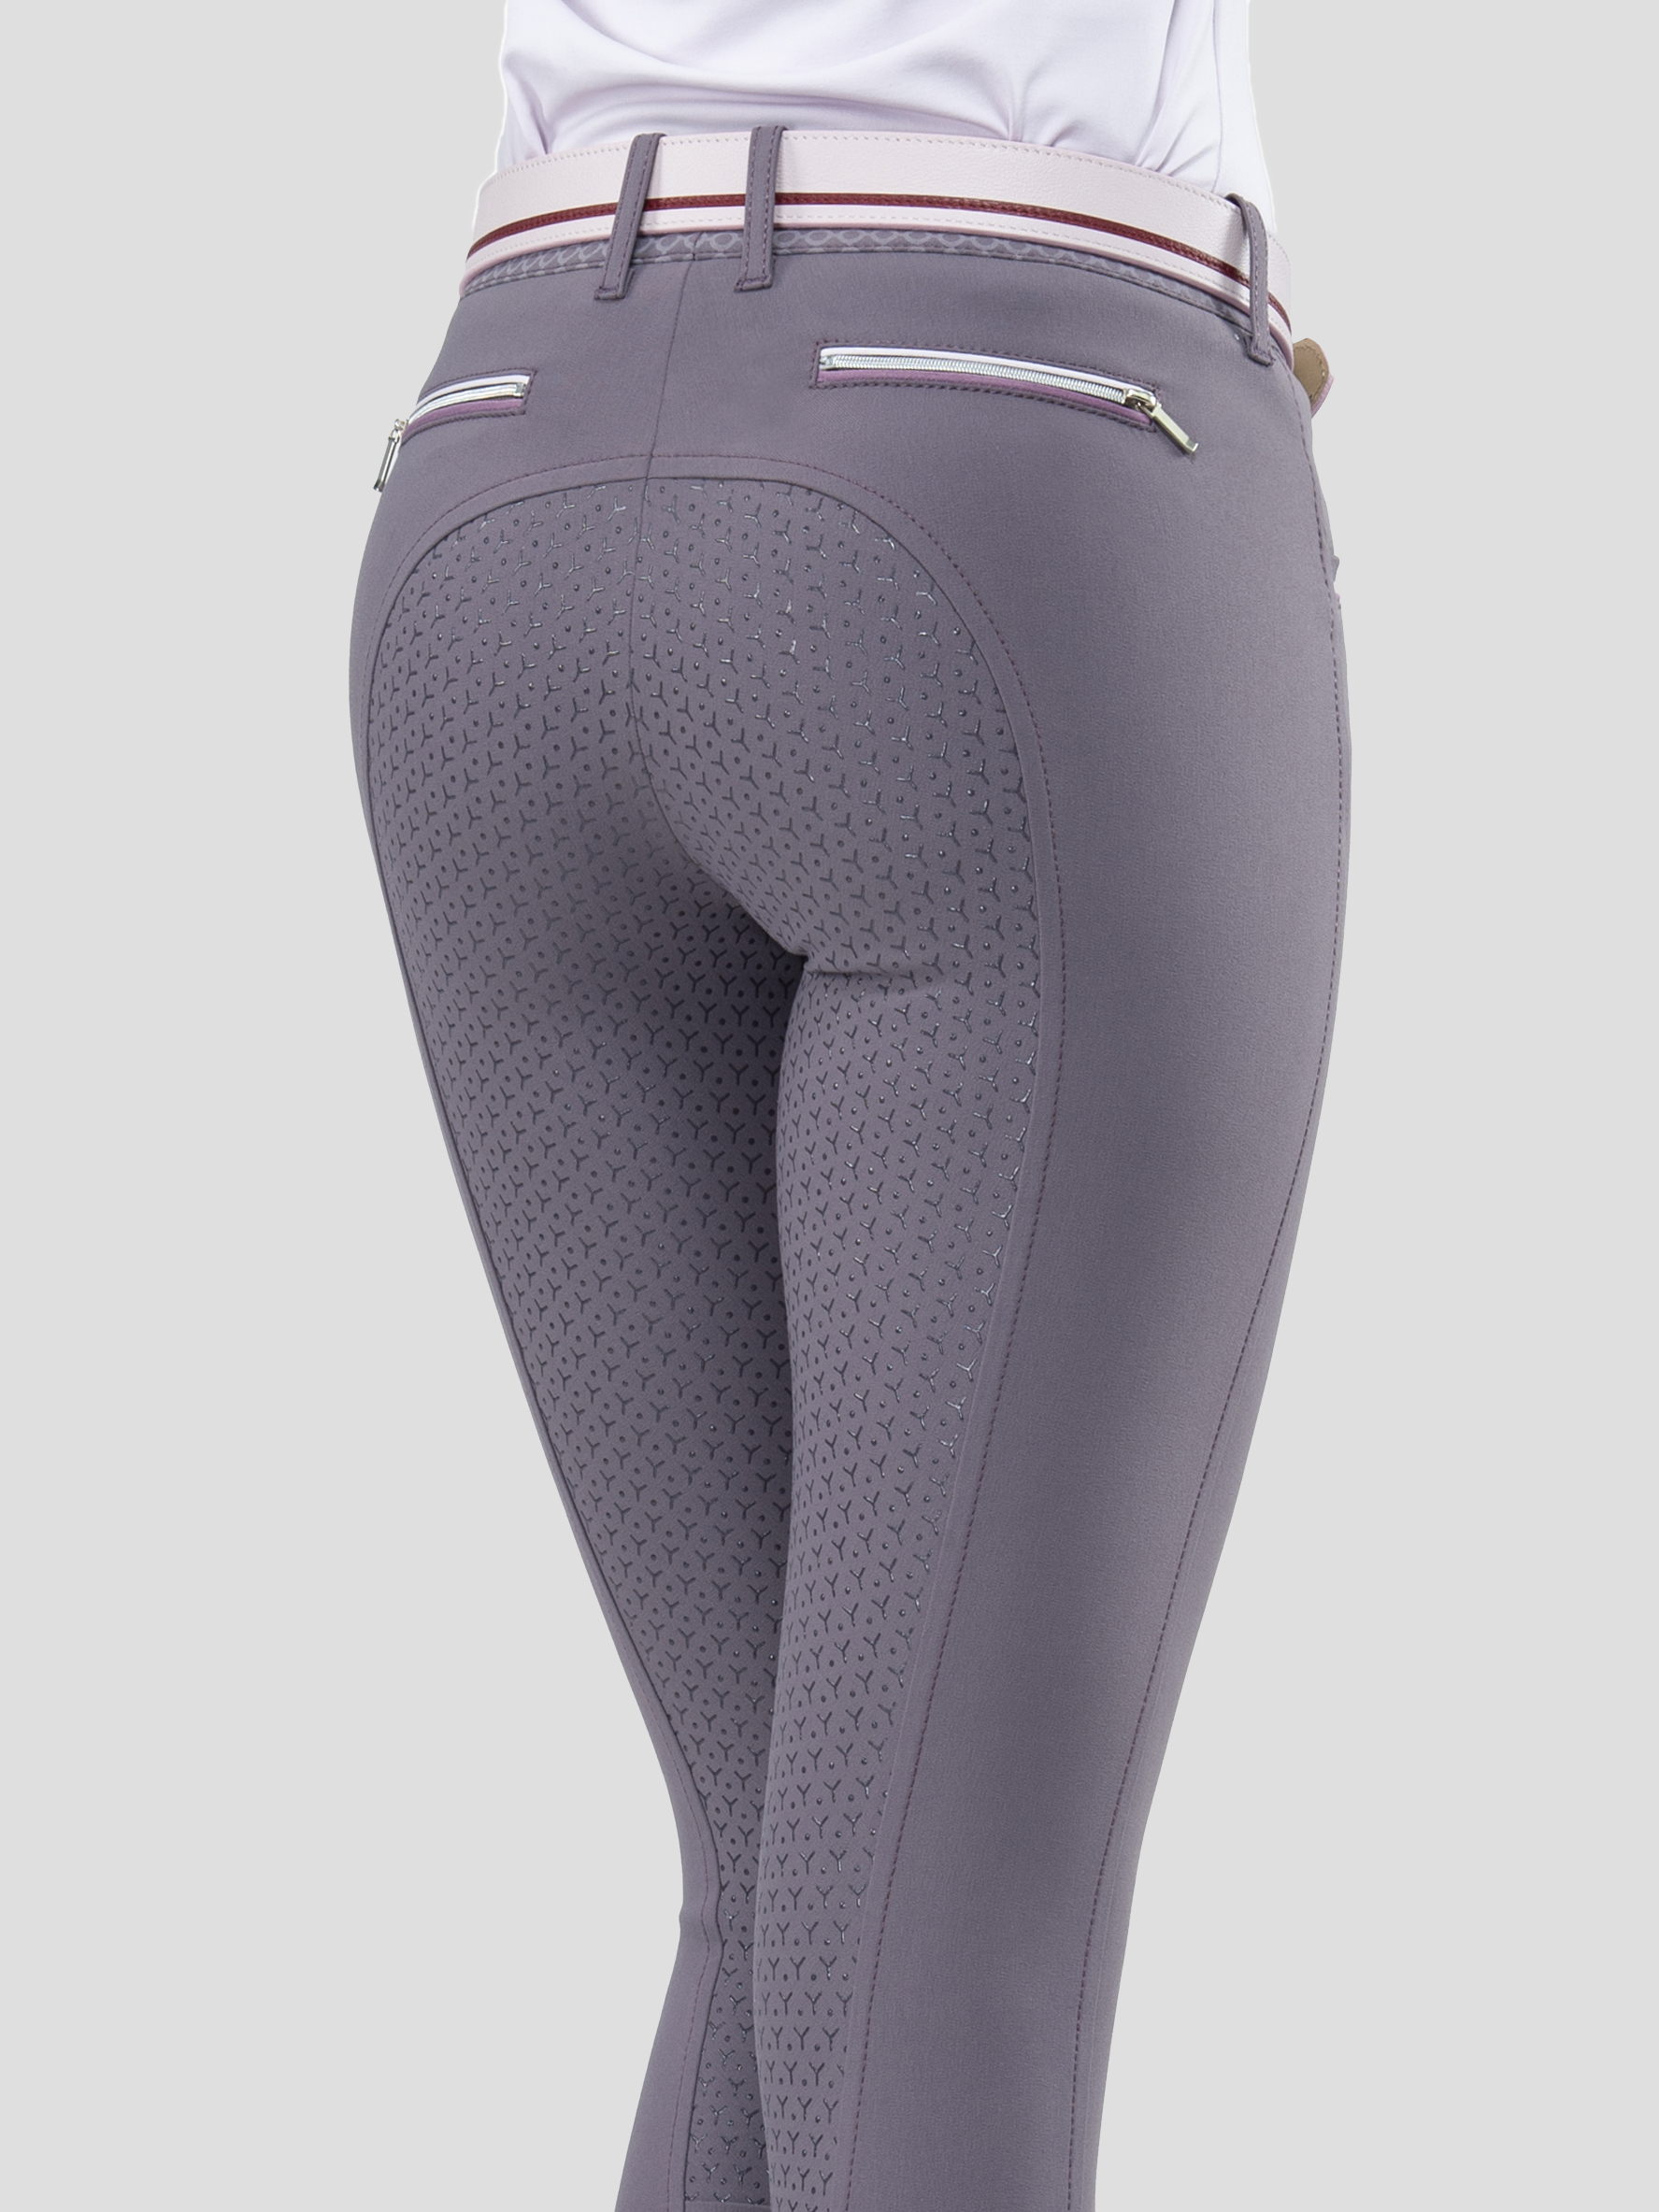 ESHA WOMEN'S FULL GRIP BREECHES WITH DOUBLE PIPING 3